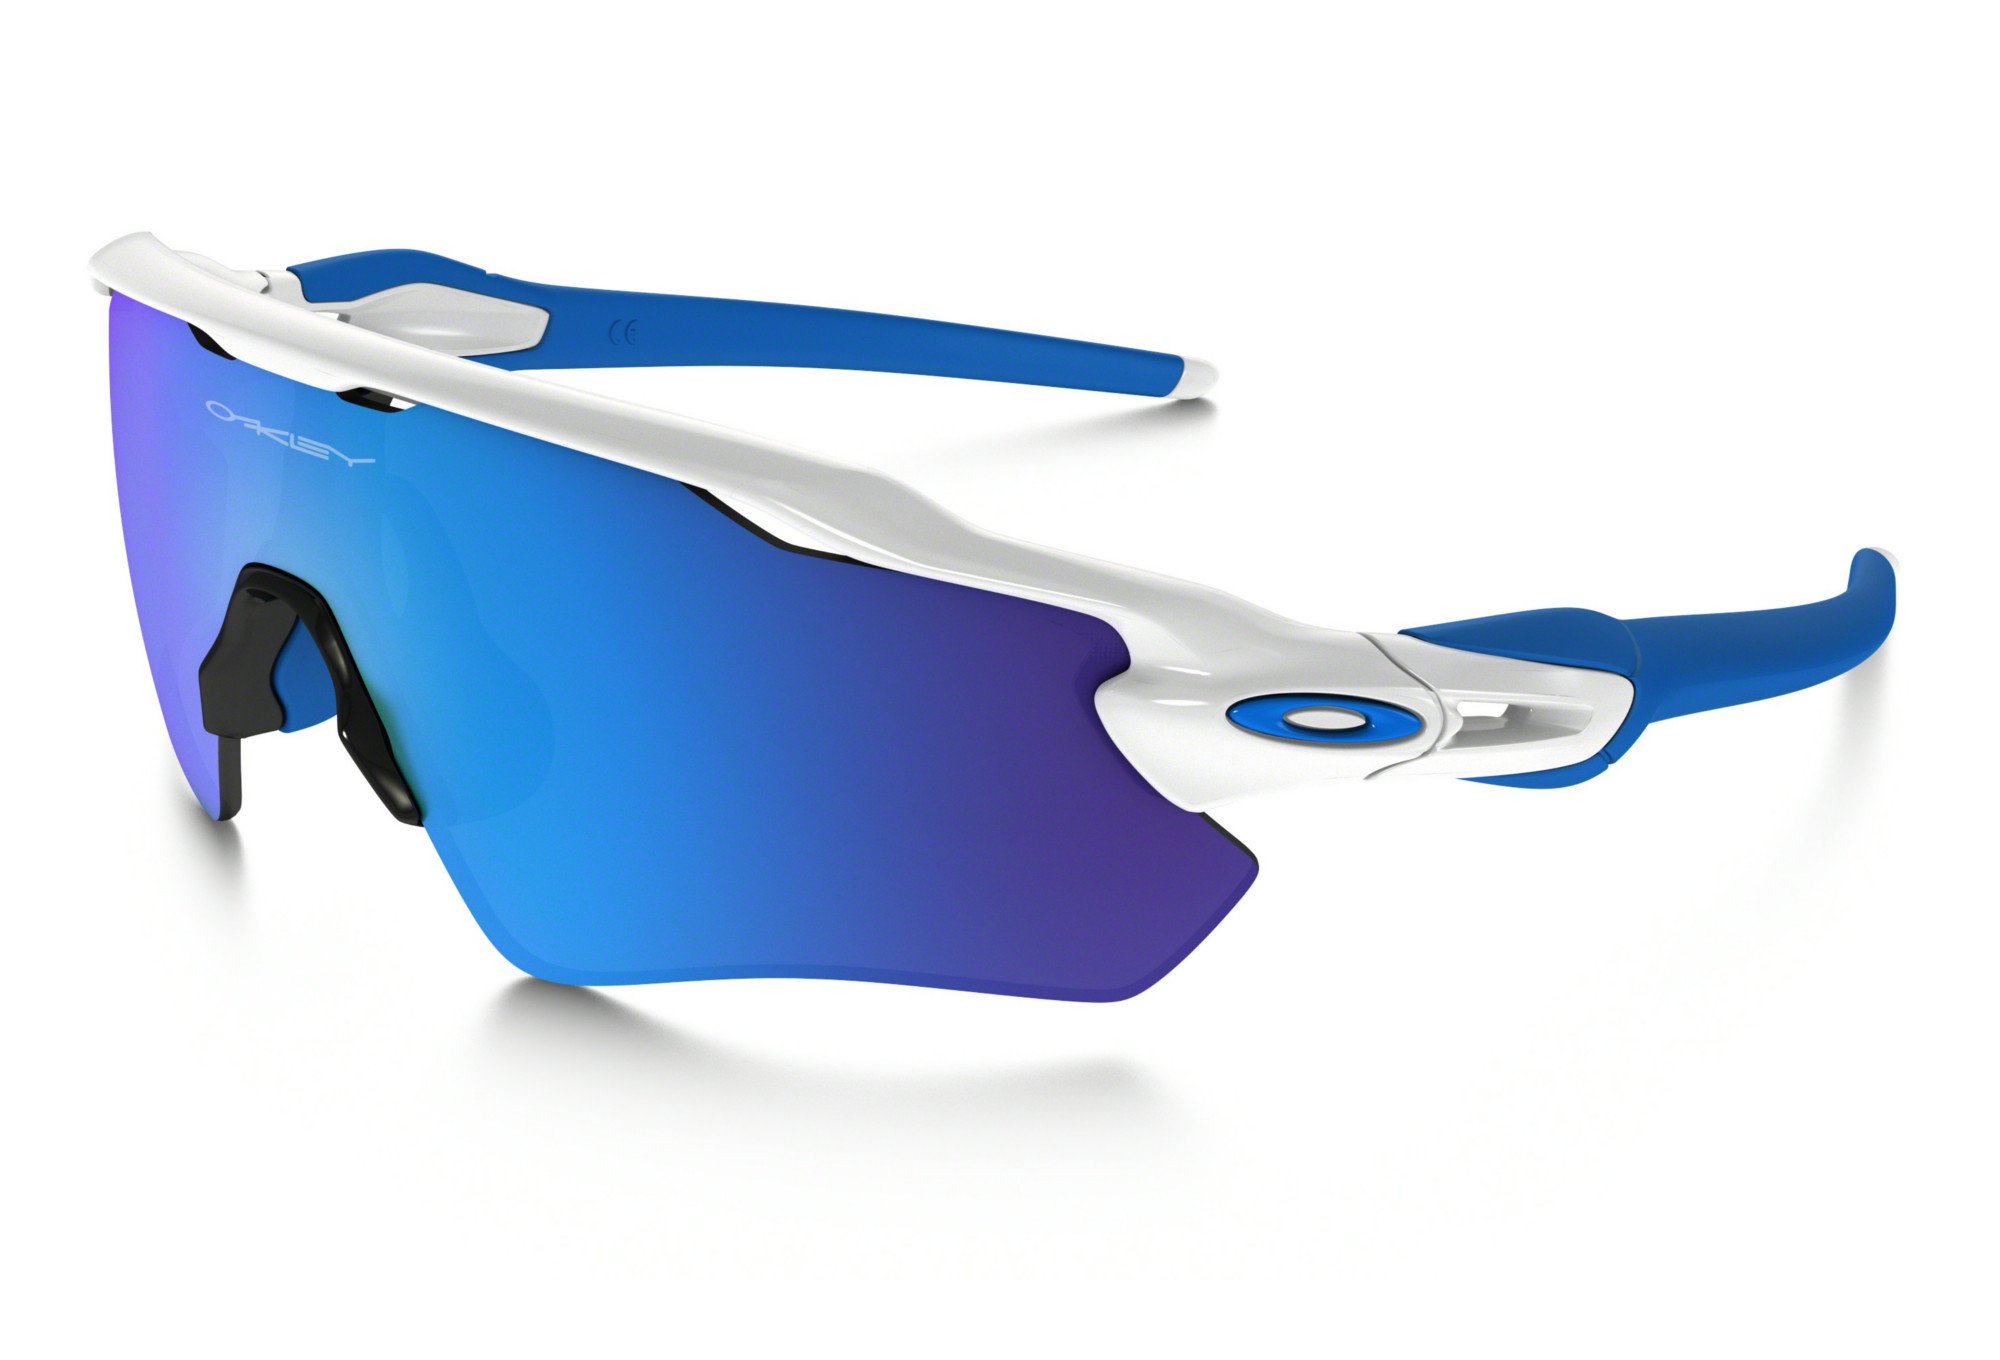 ecf7949b2983 OAKLEY Youth Sunglasses Radar EV XS Path Polished White/Sapphire Iridium  Ref OJ9001-0131 | Alltricks.com